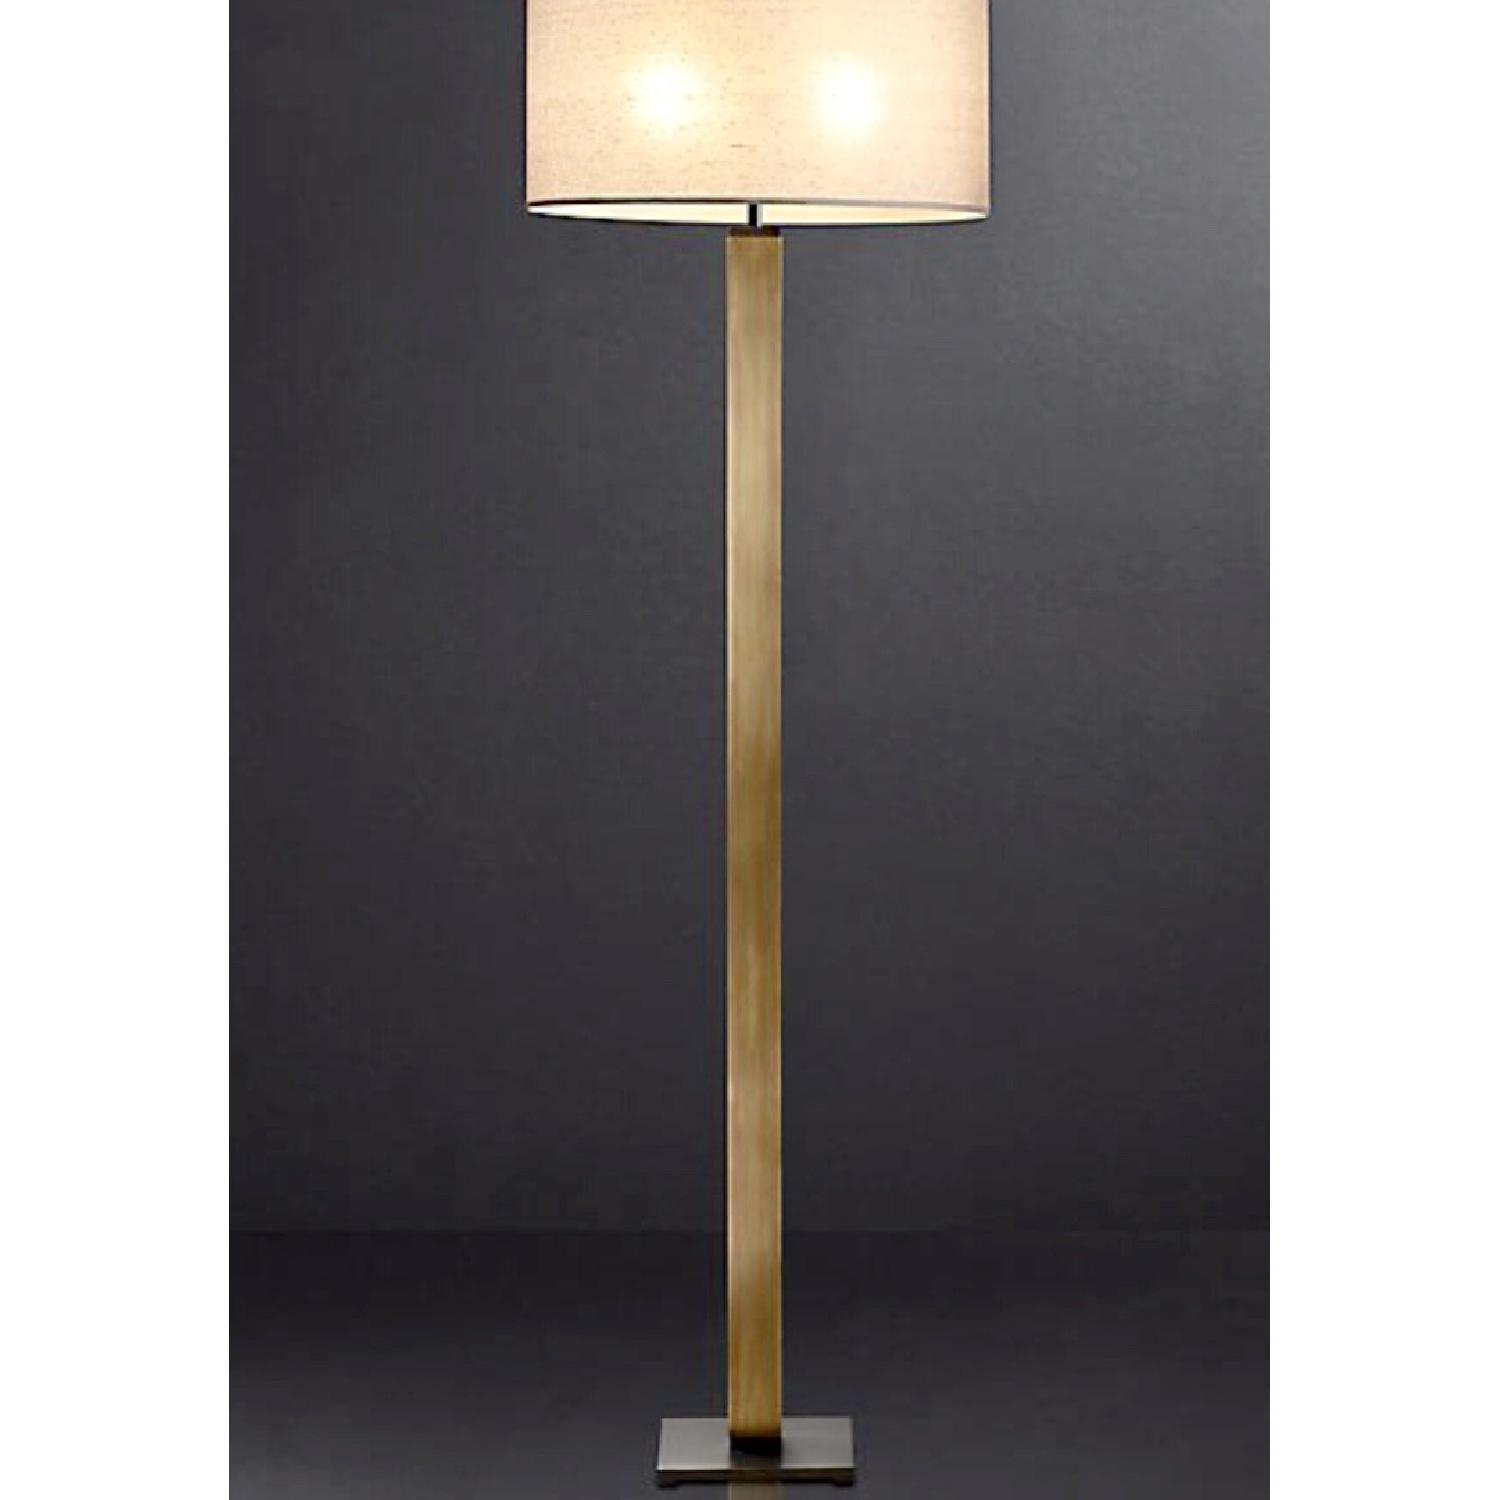 Restoration Hardware Square Column Floor Lamp